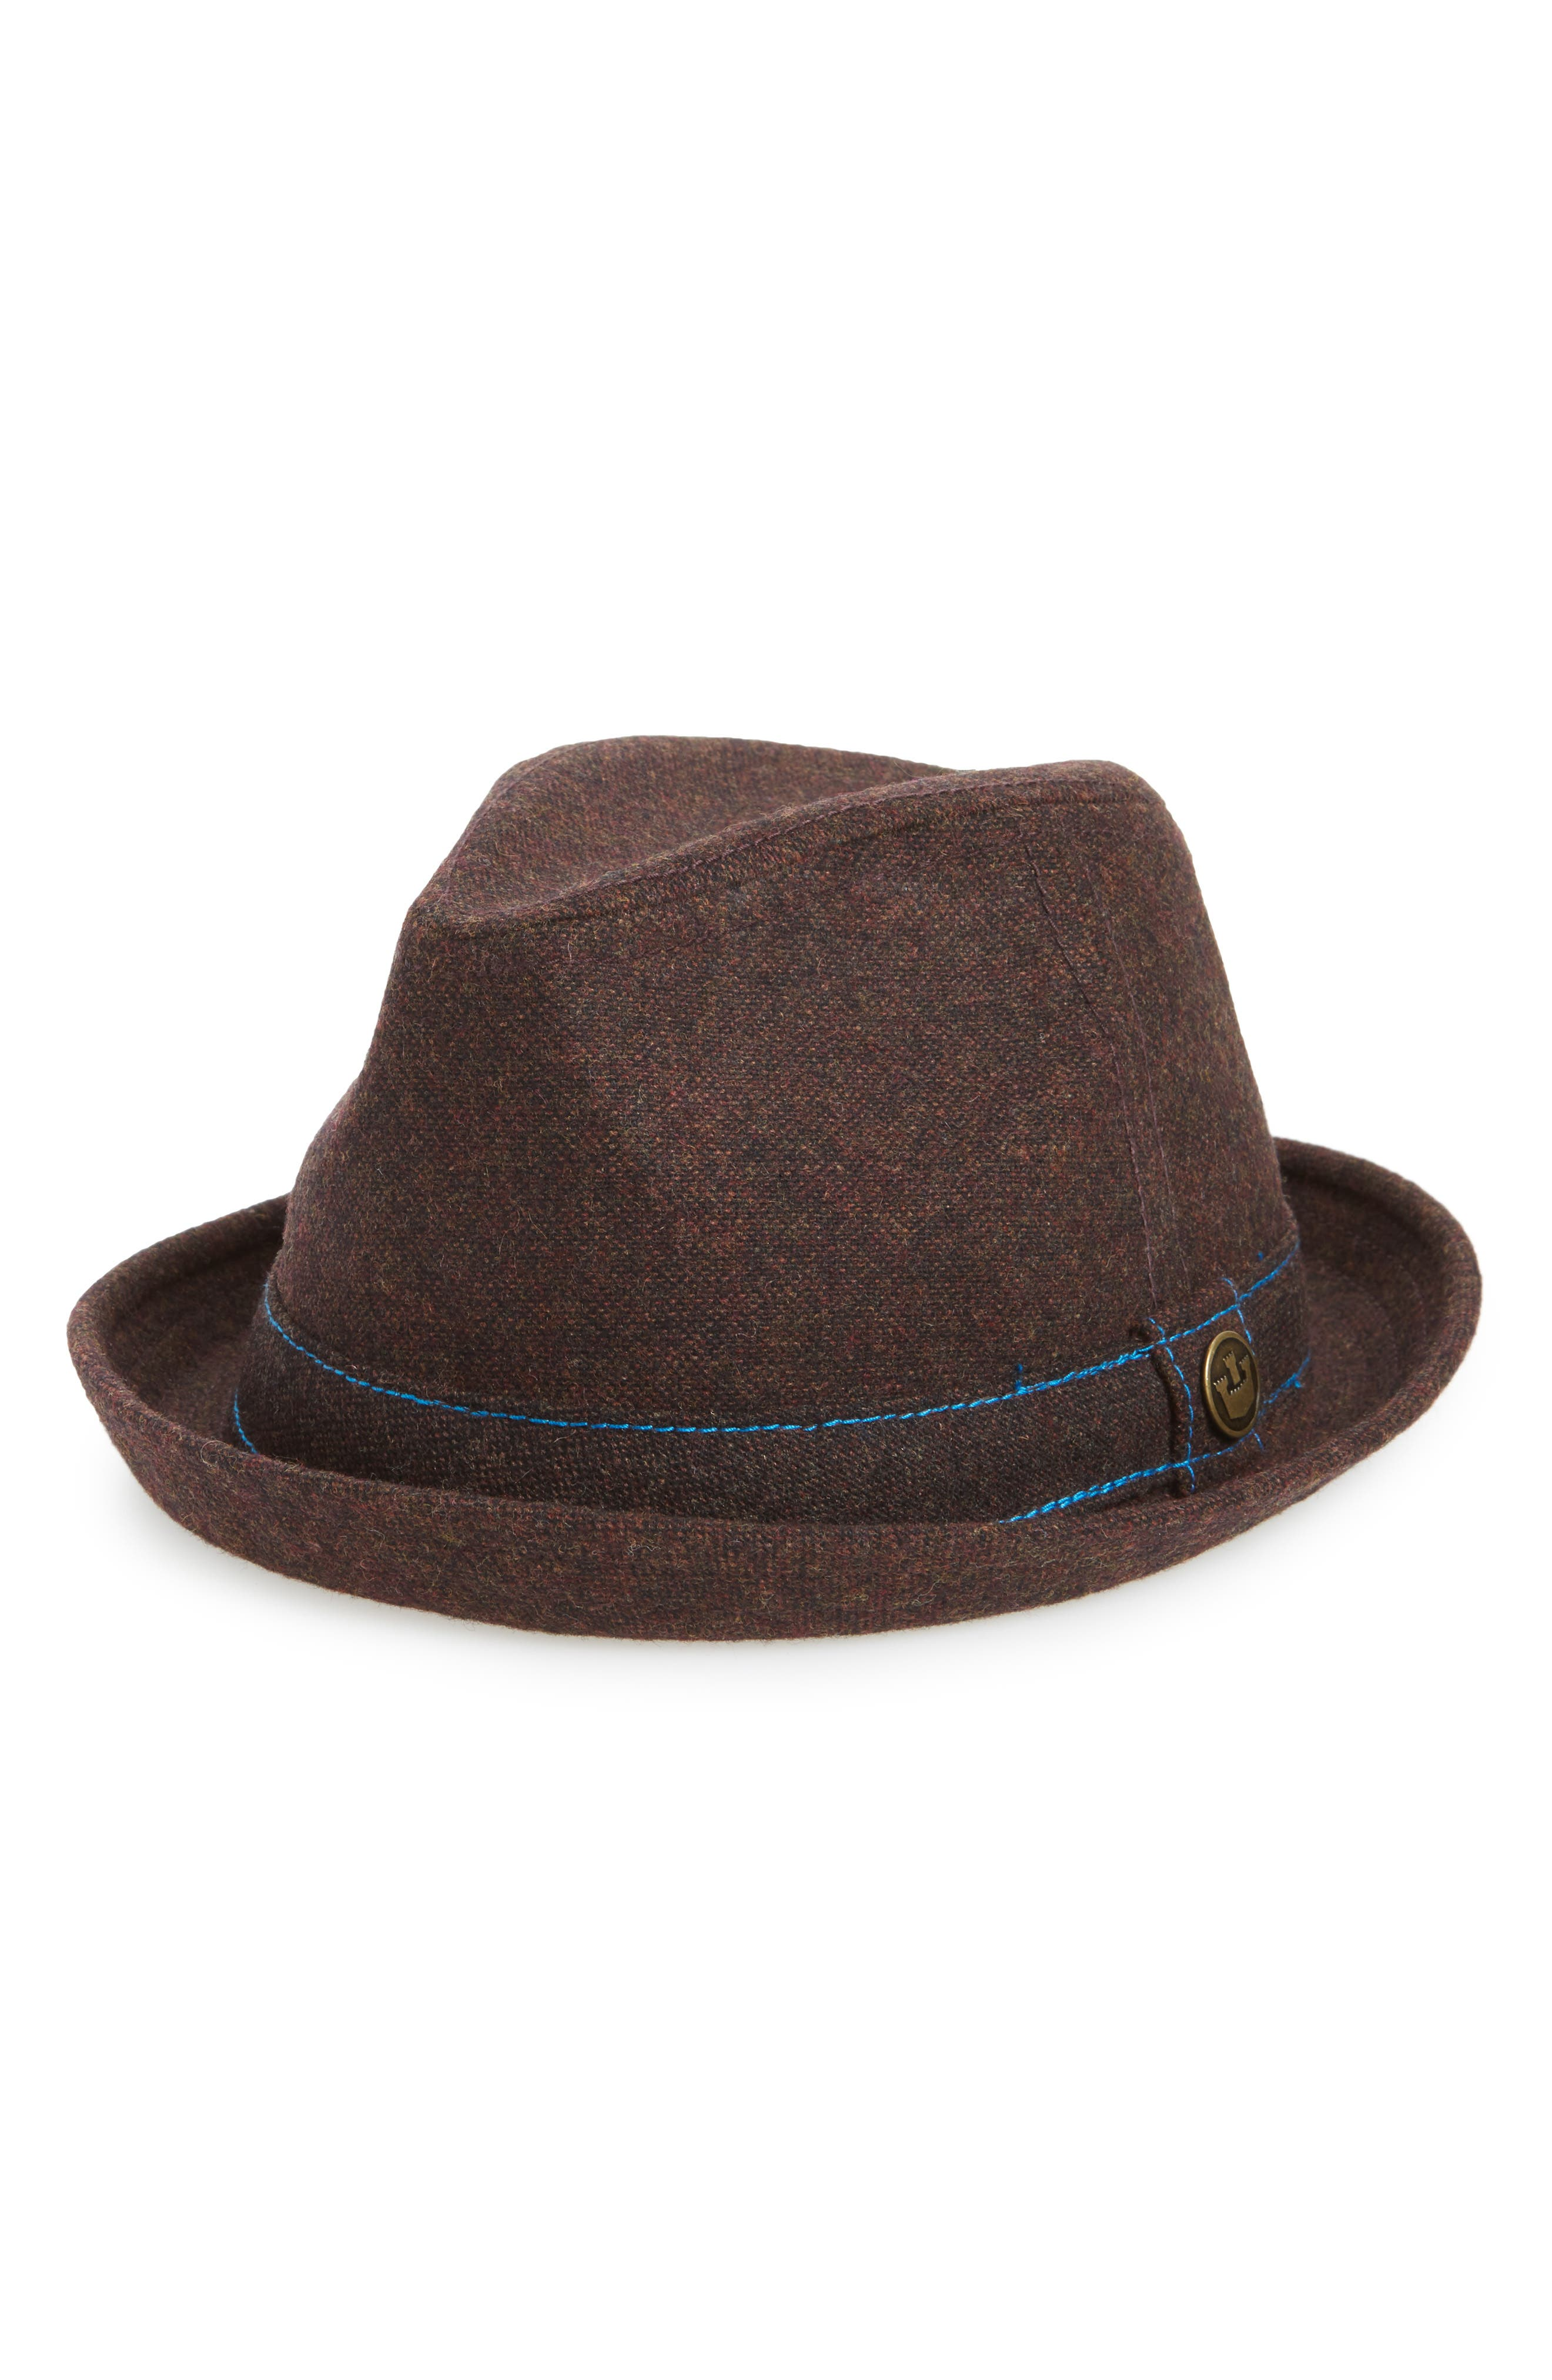 Alternate Image 1 Selected - Goorin Brothers The Barber Wool Blend Fedora